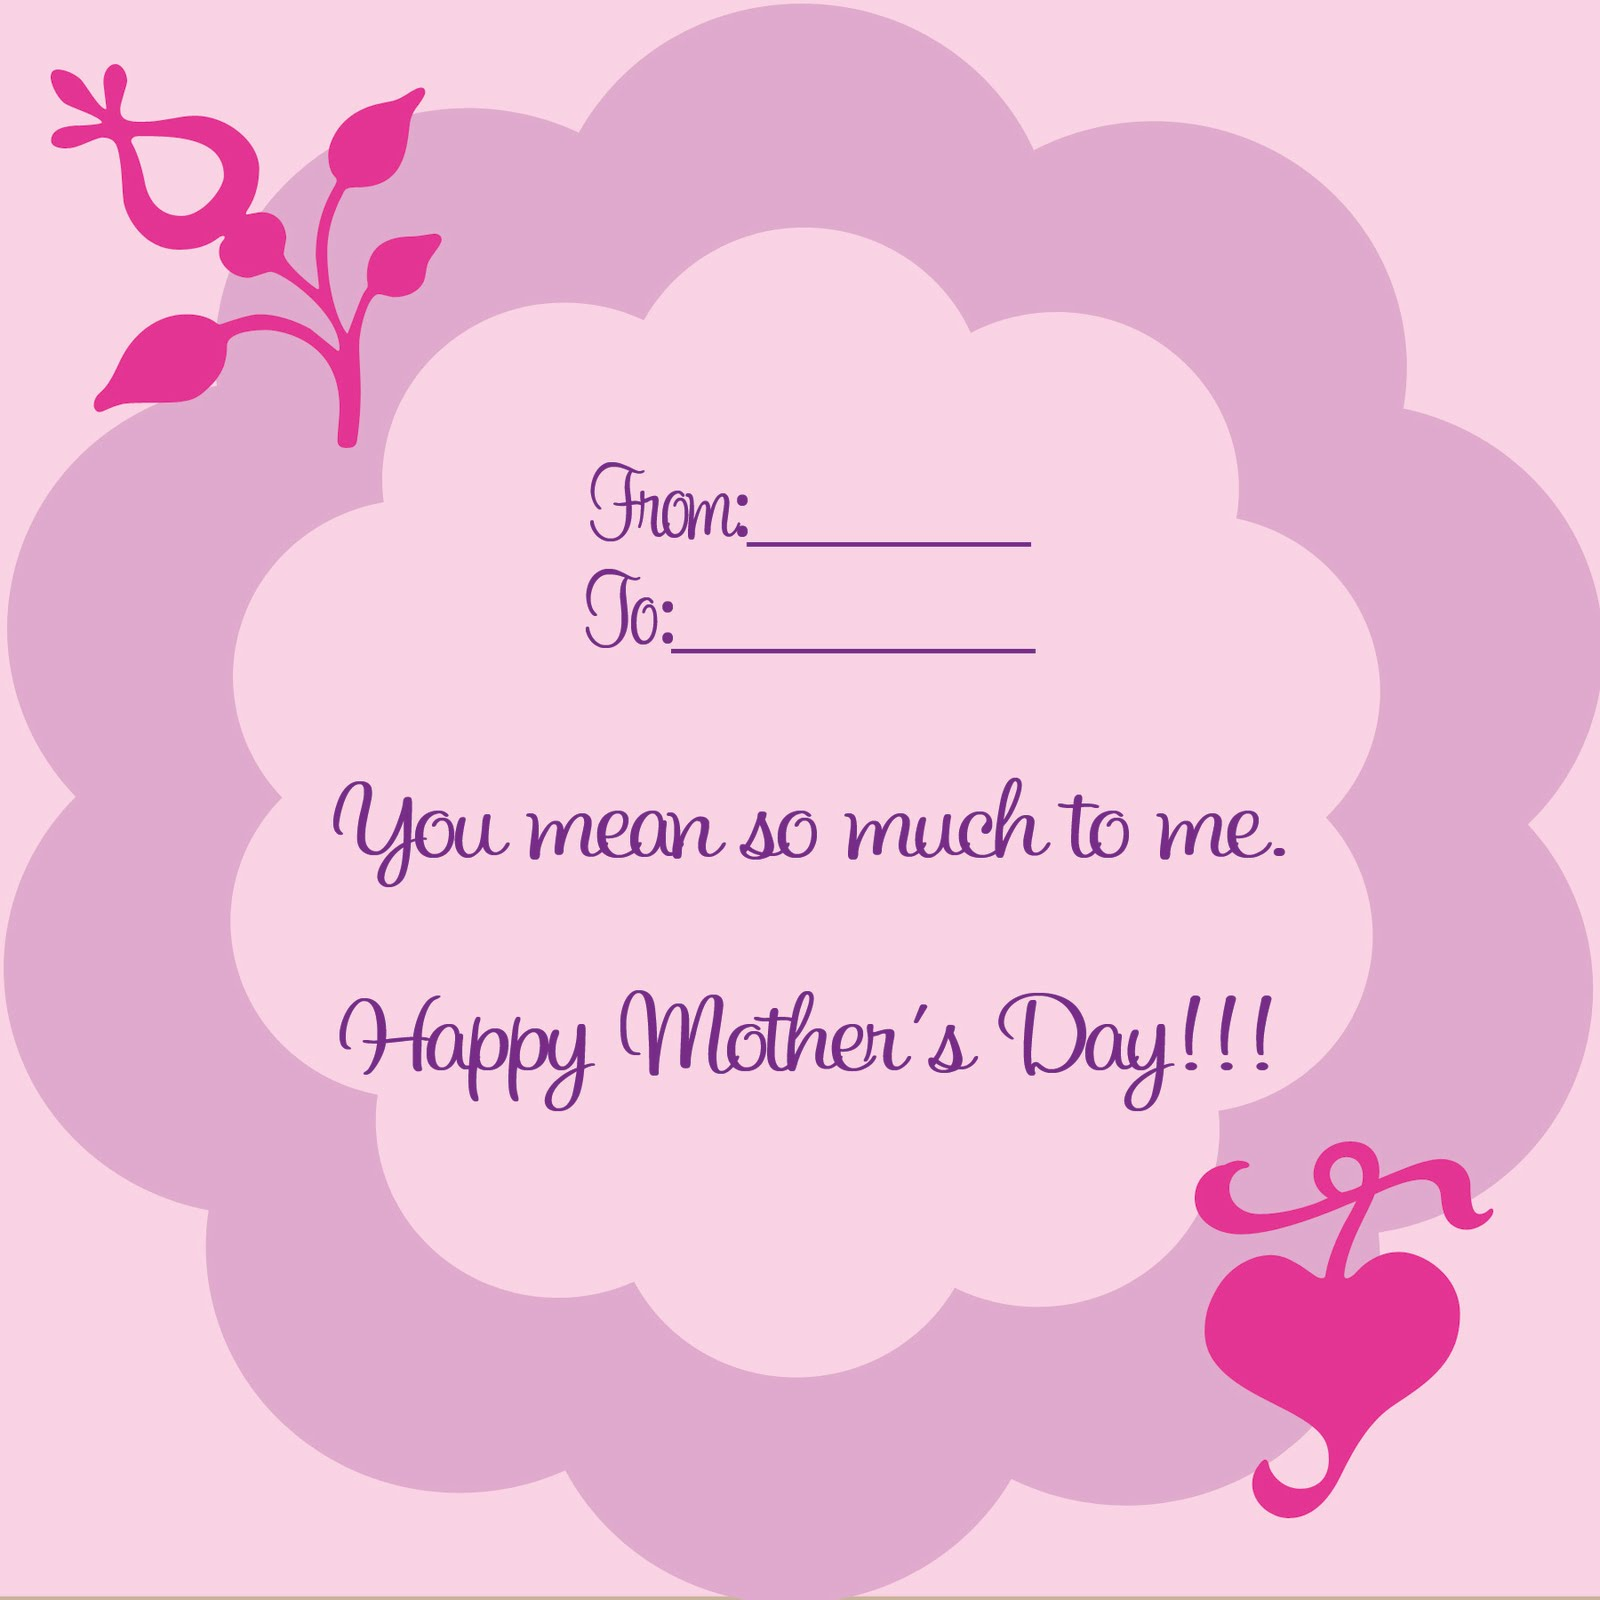 Free mothers day greeting cards mobile download m4hsunfo